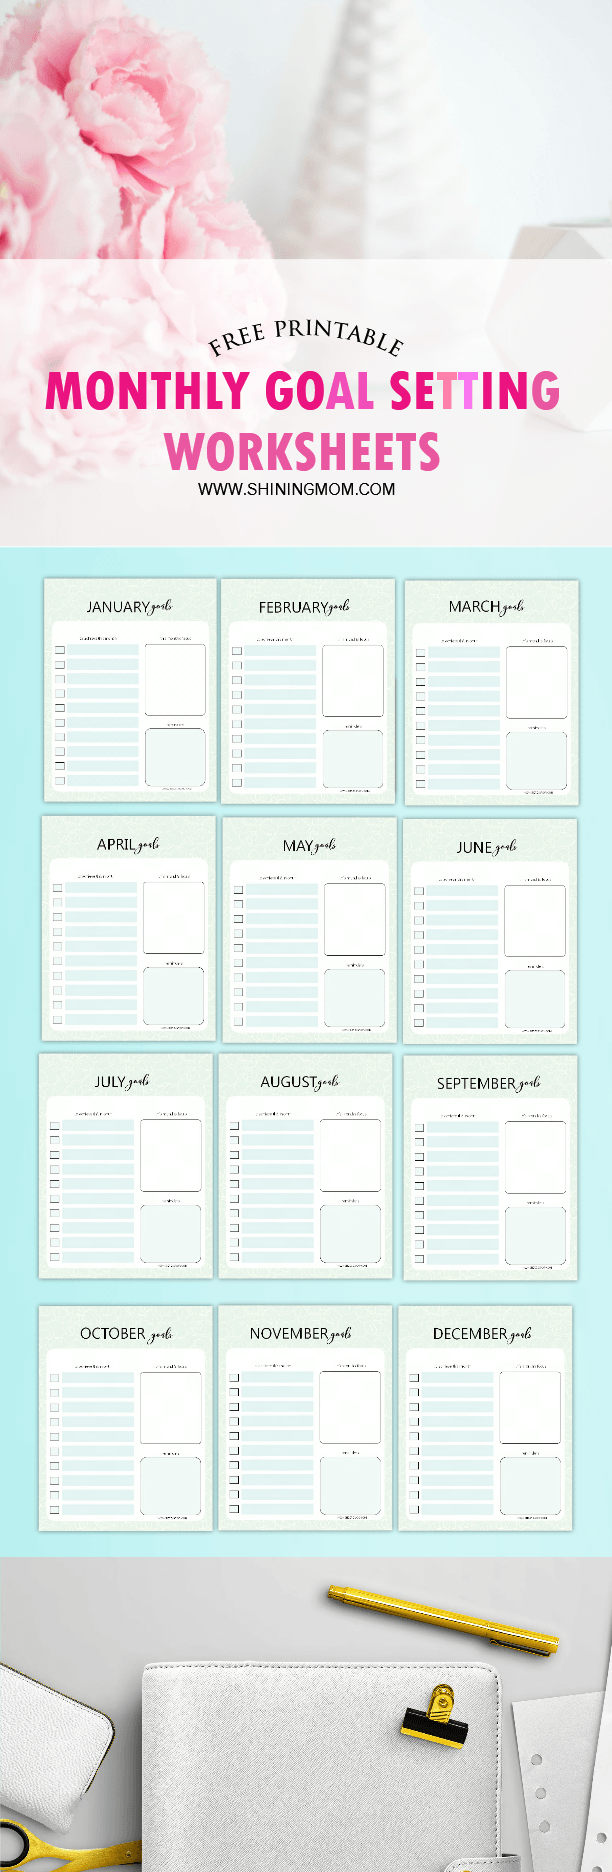 Free Printable Monthly Goal Sheets From Shiningmom.com